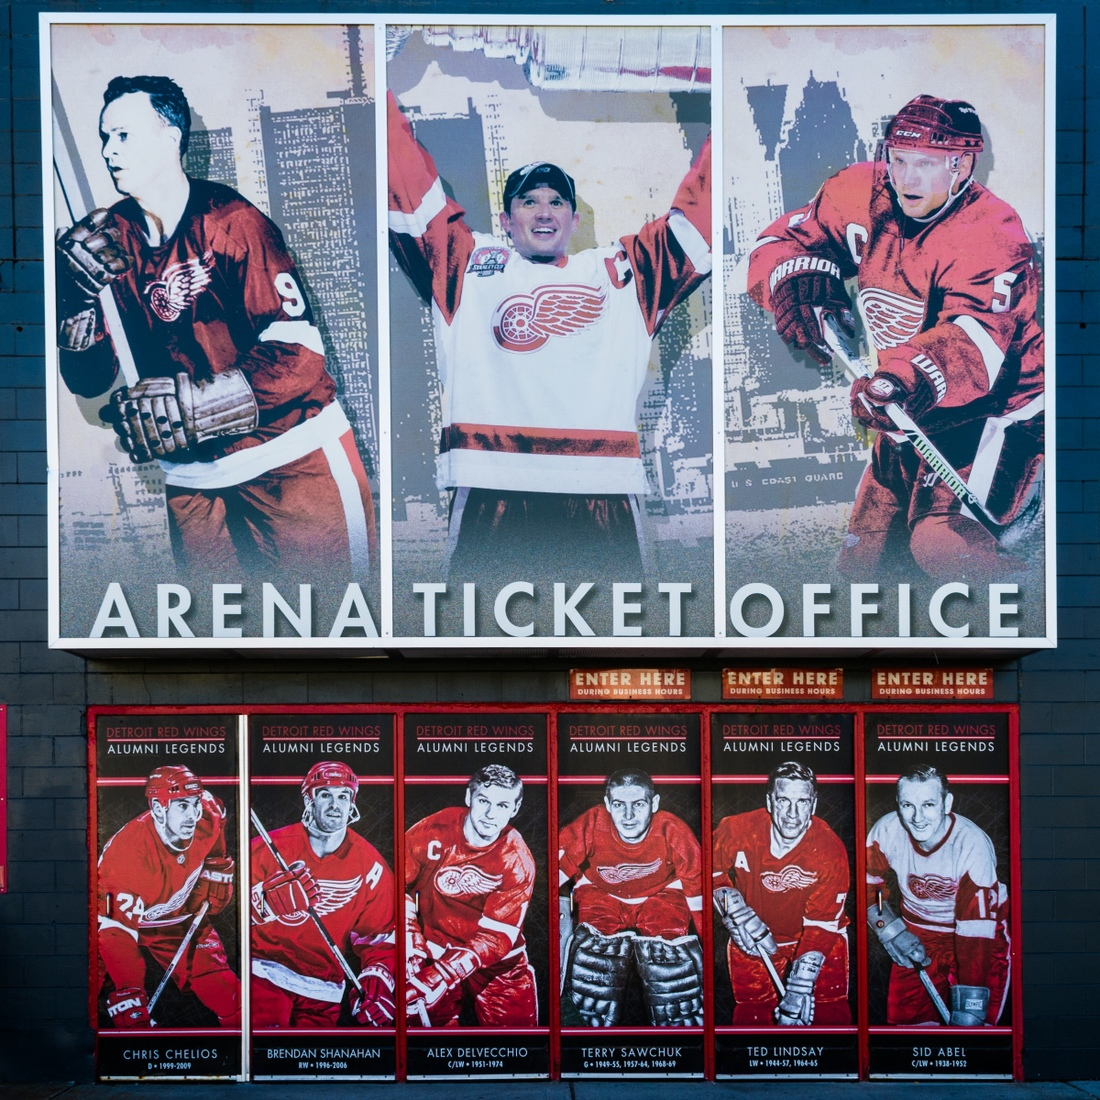 Detroit Sports Joe Louis Arena - 9 Red Wings Legends